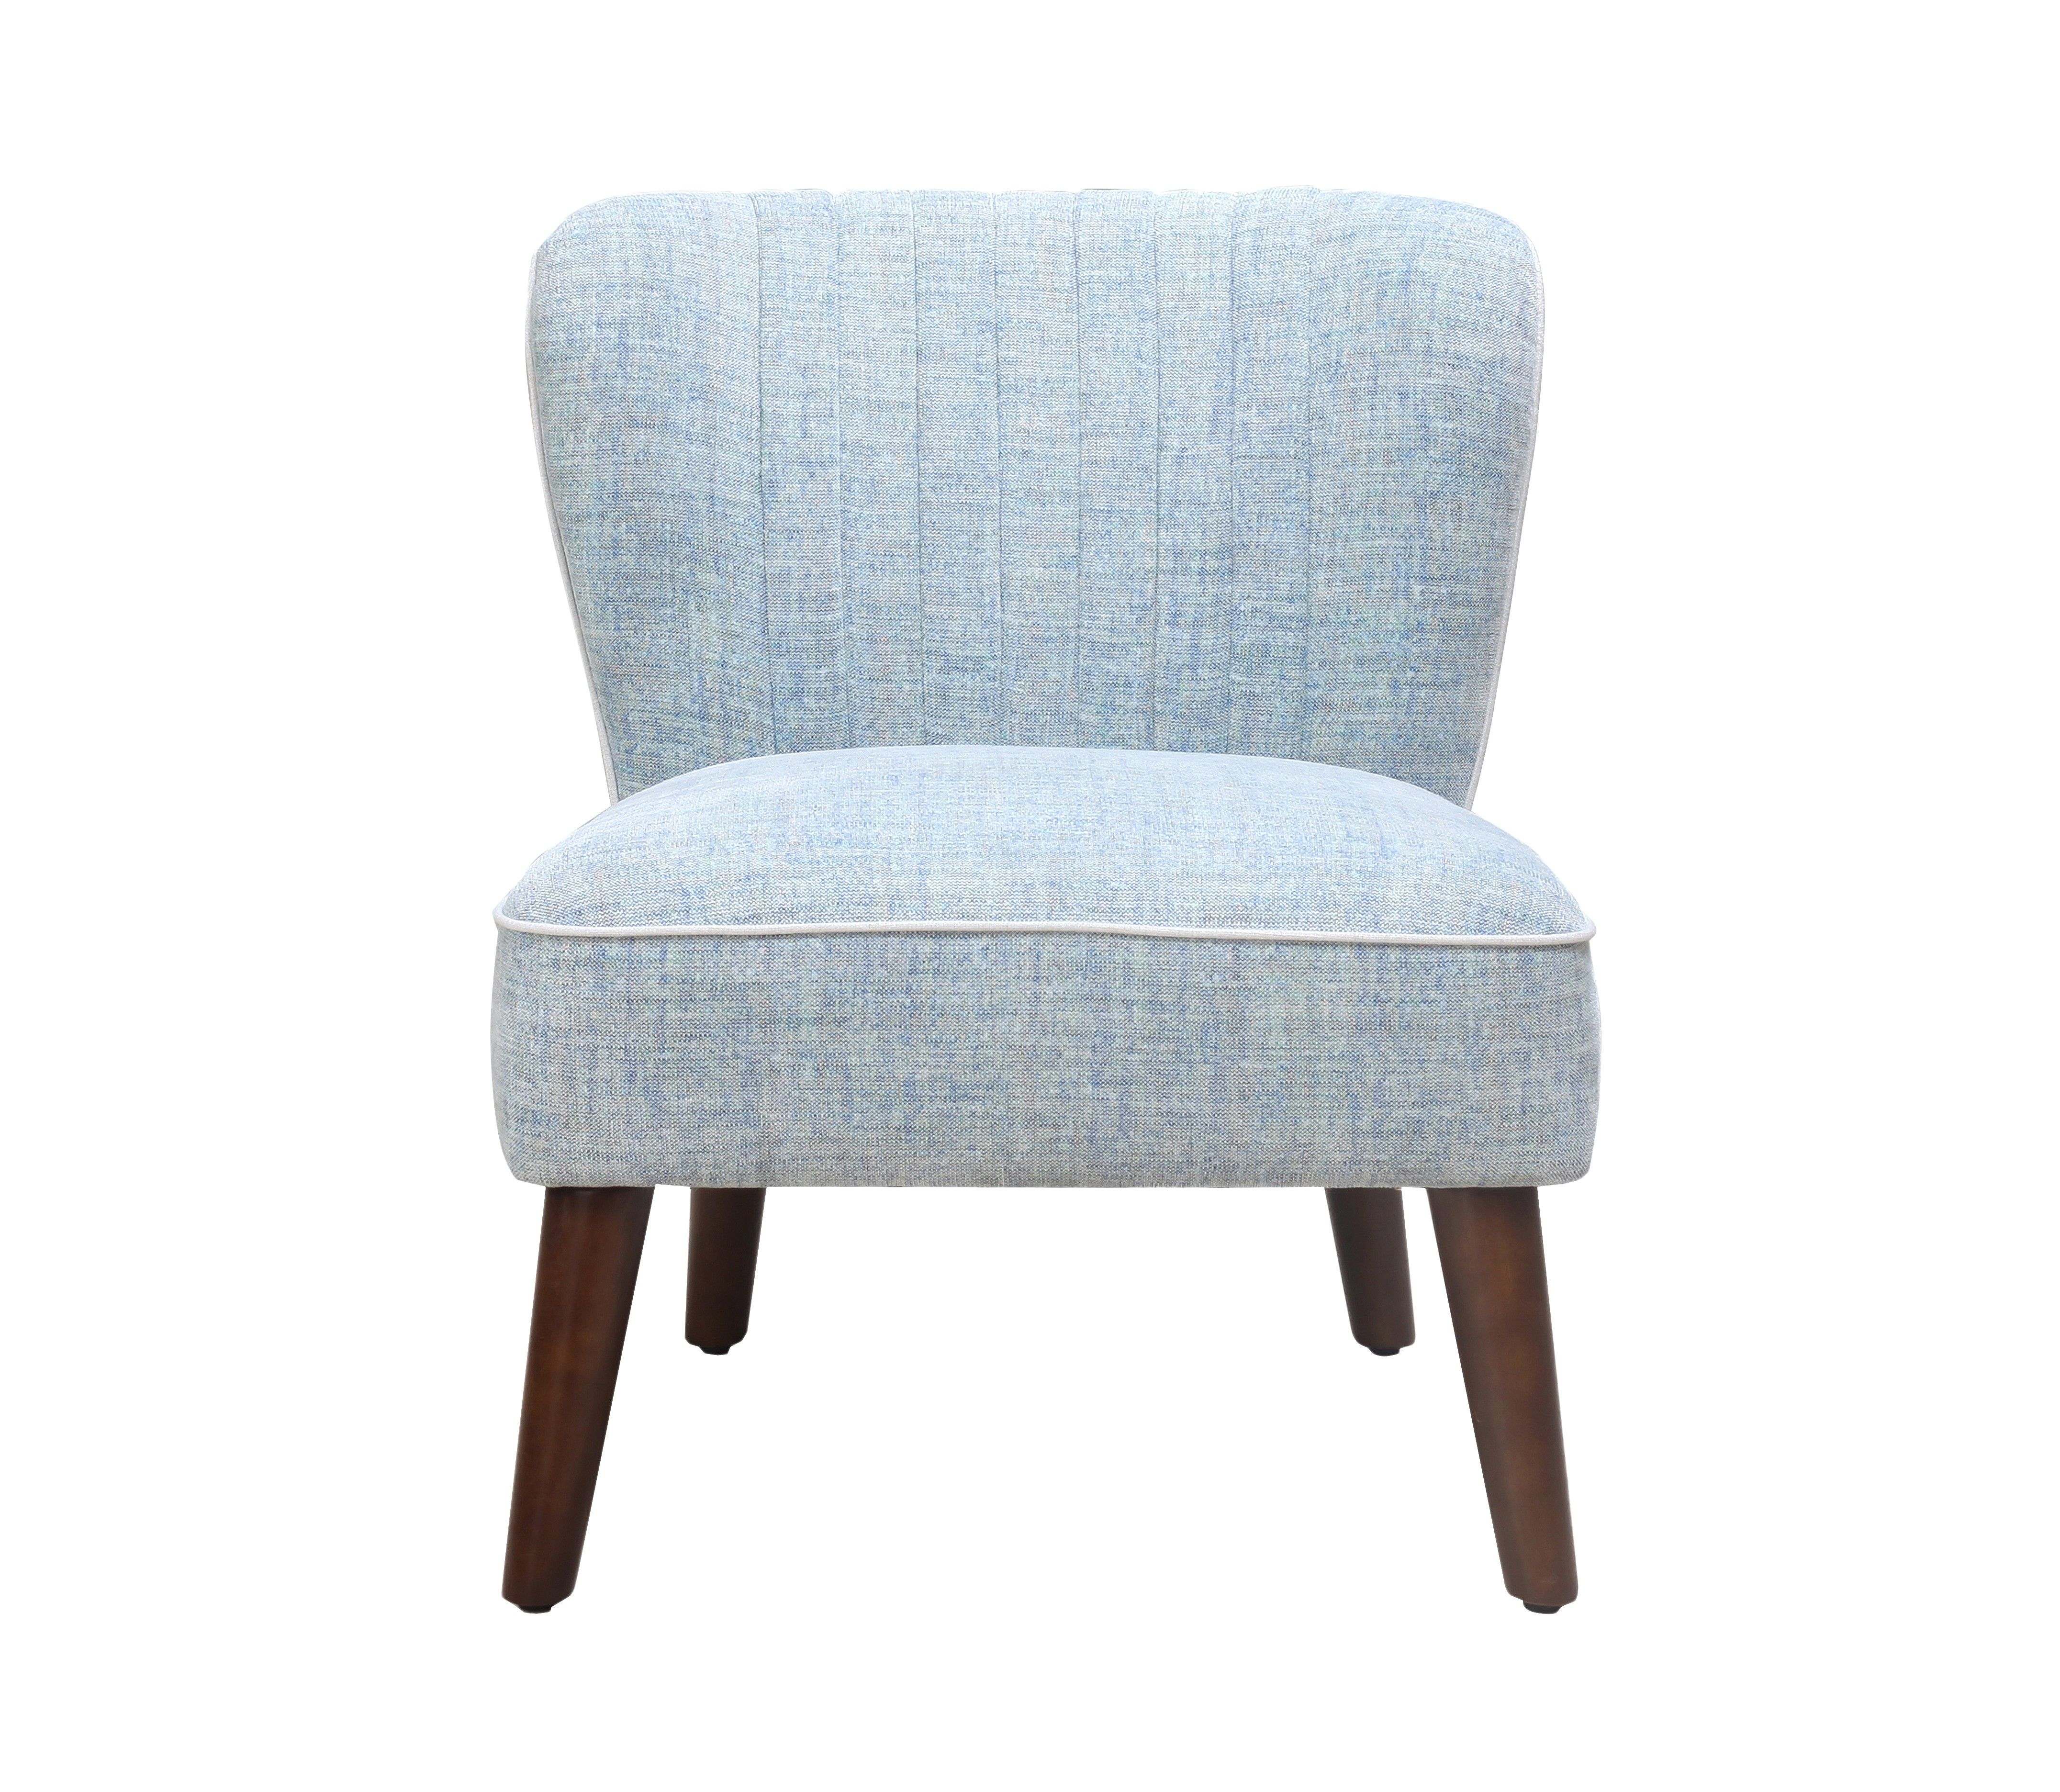 contemporary furniture chairs. Simple Chairs This Contemporary Accent Chair Brings A Touch Of Soft Color To Your Space  A Pair In Contemporary Furniture Chairs S